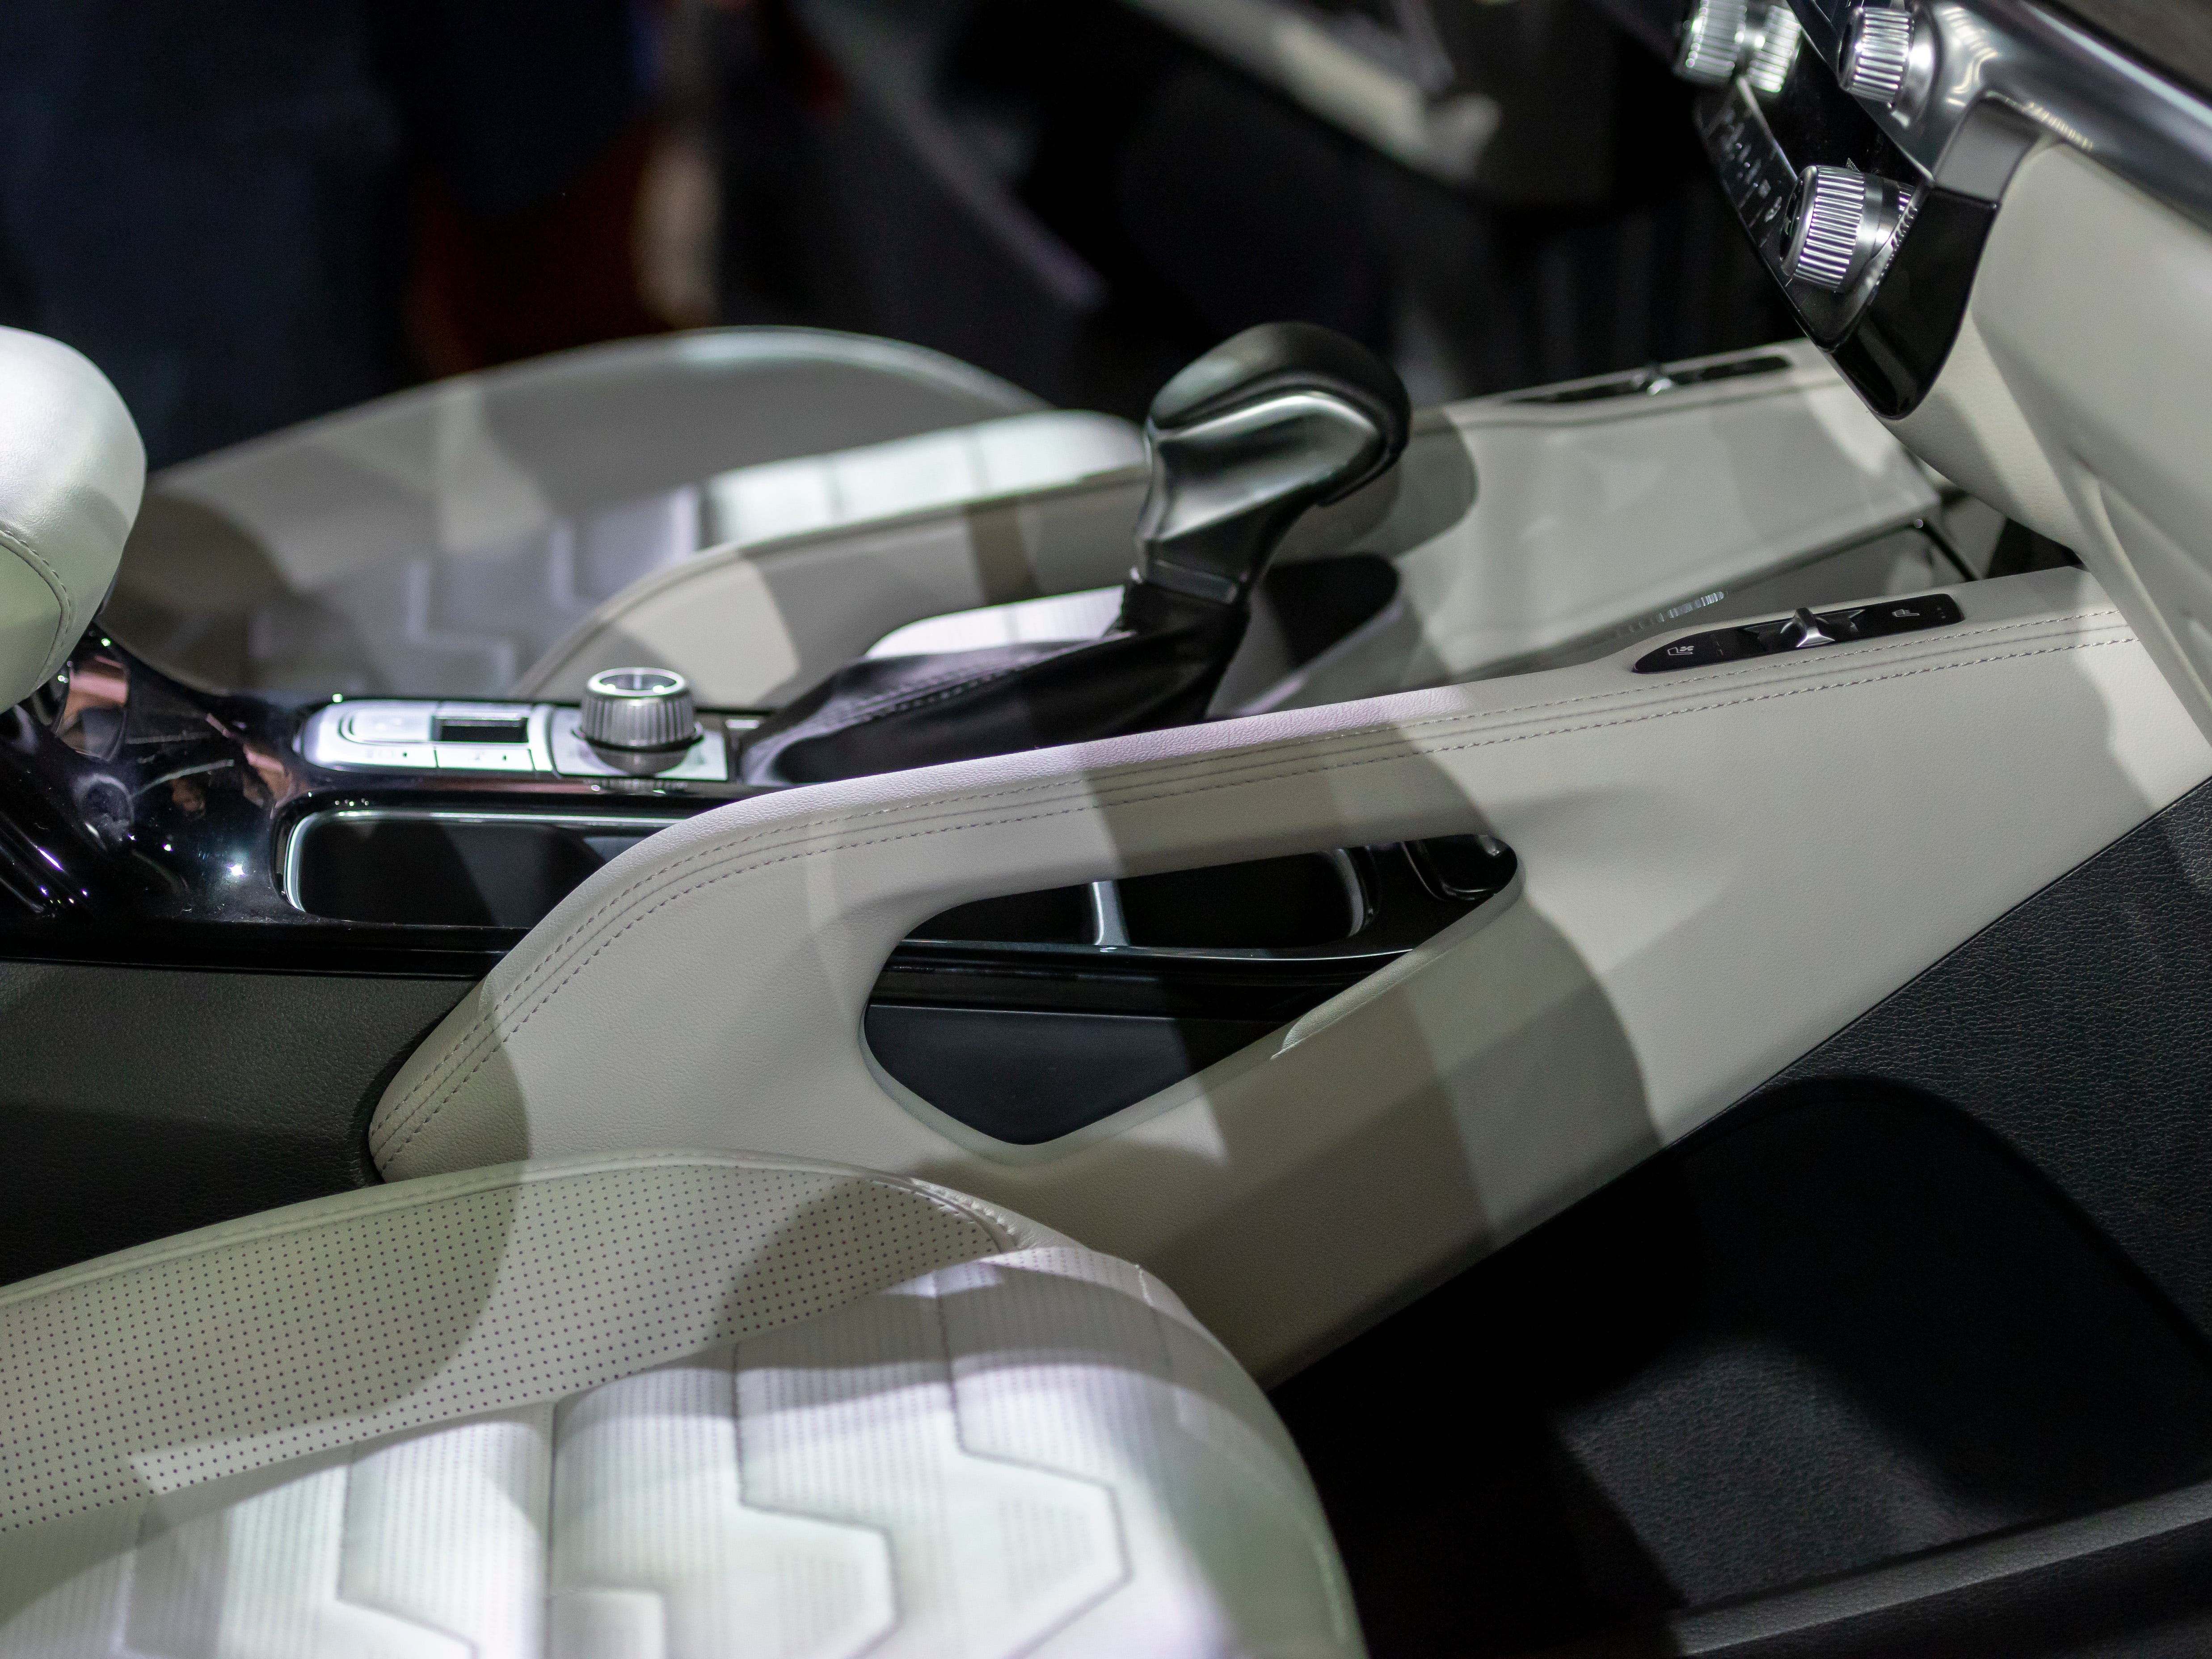 Large handle grips are part of the interior of the 2020 Kia Telluride.